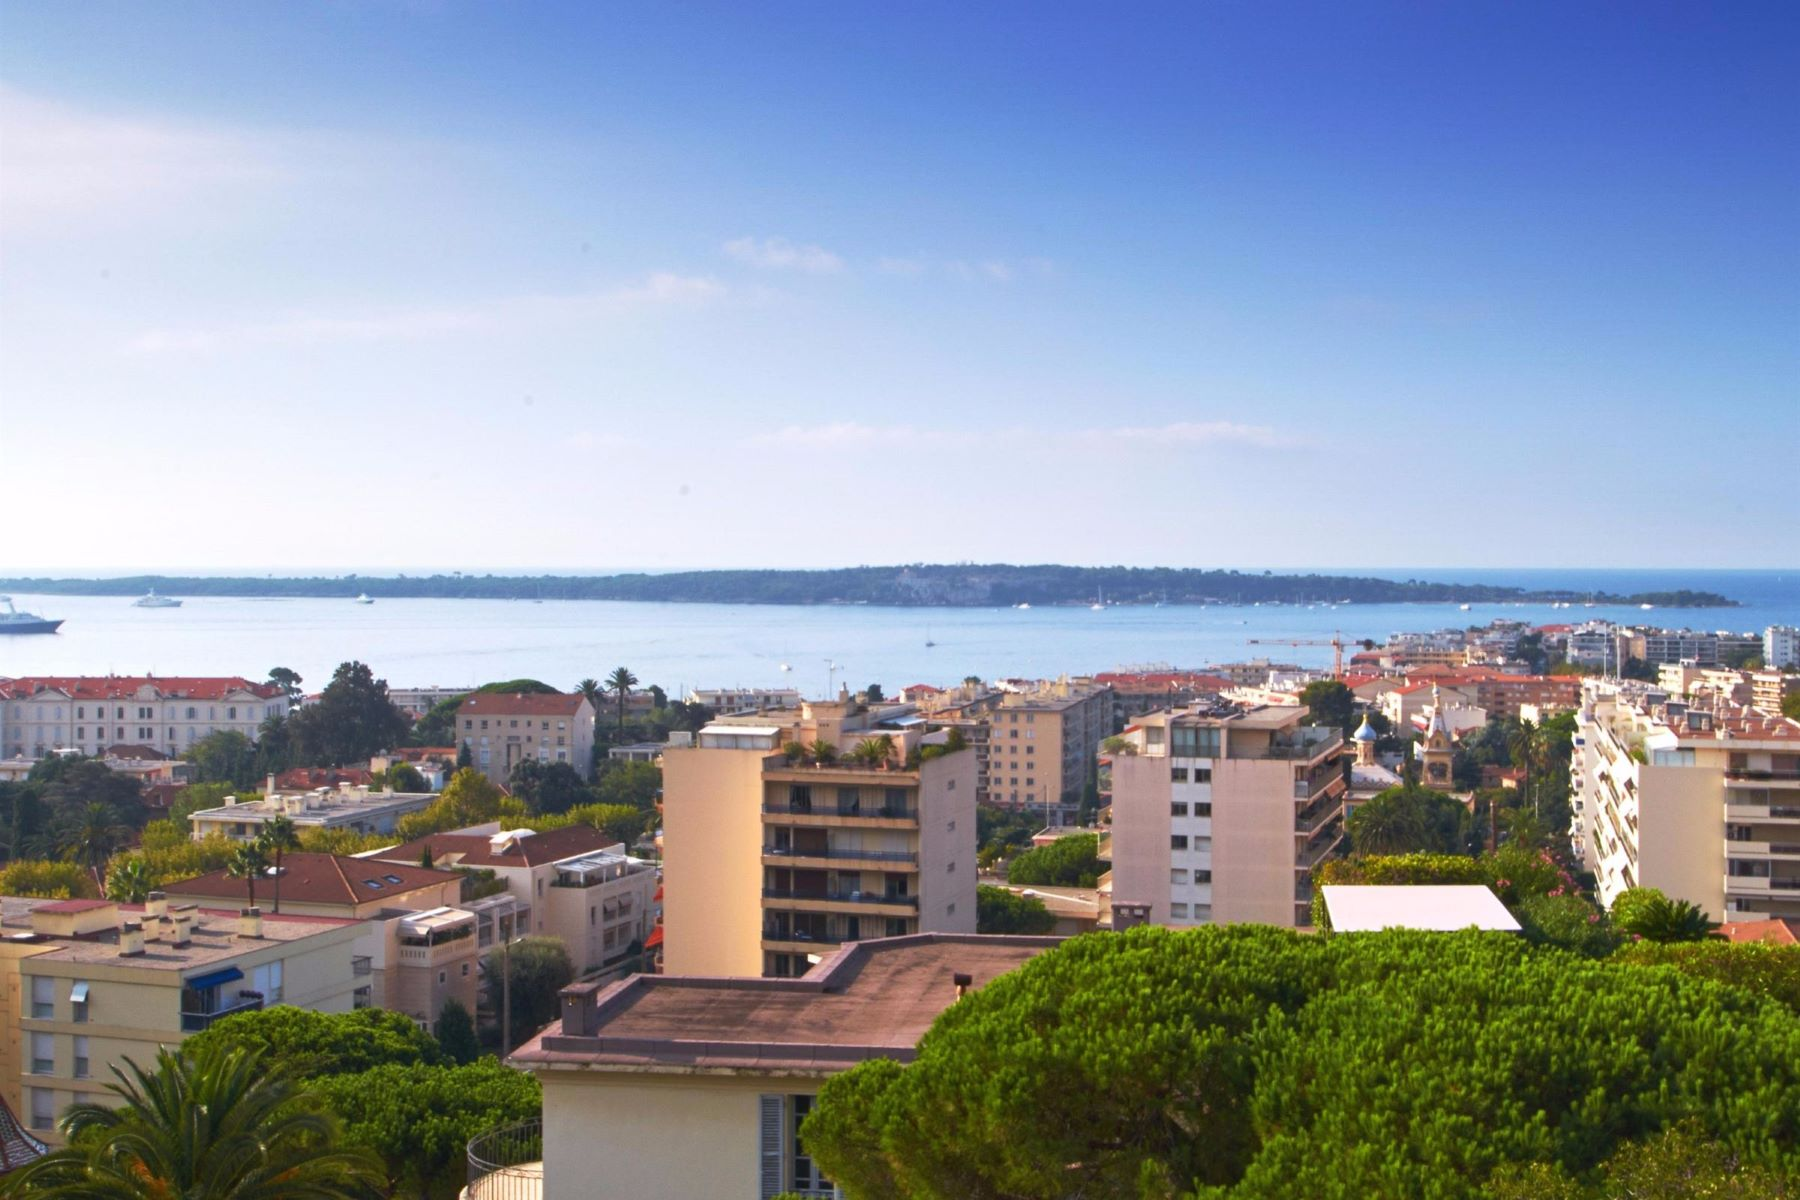 Apartment for Sale at Luxury penthouse for sale in the area of 'La Basse Californie' of Cannes Cannes, Provence-Alpes-Cote D'Azur, 06400 France